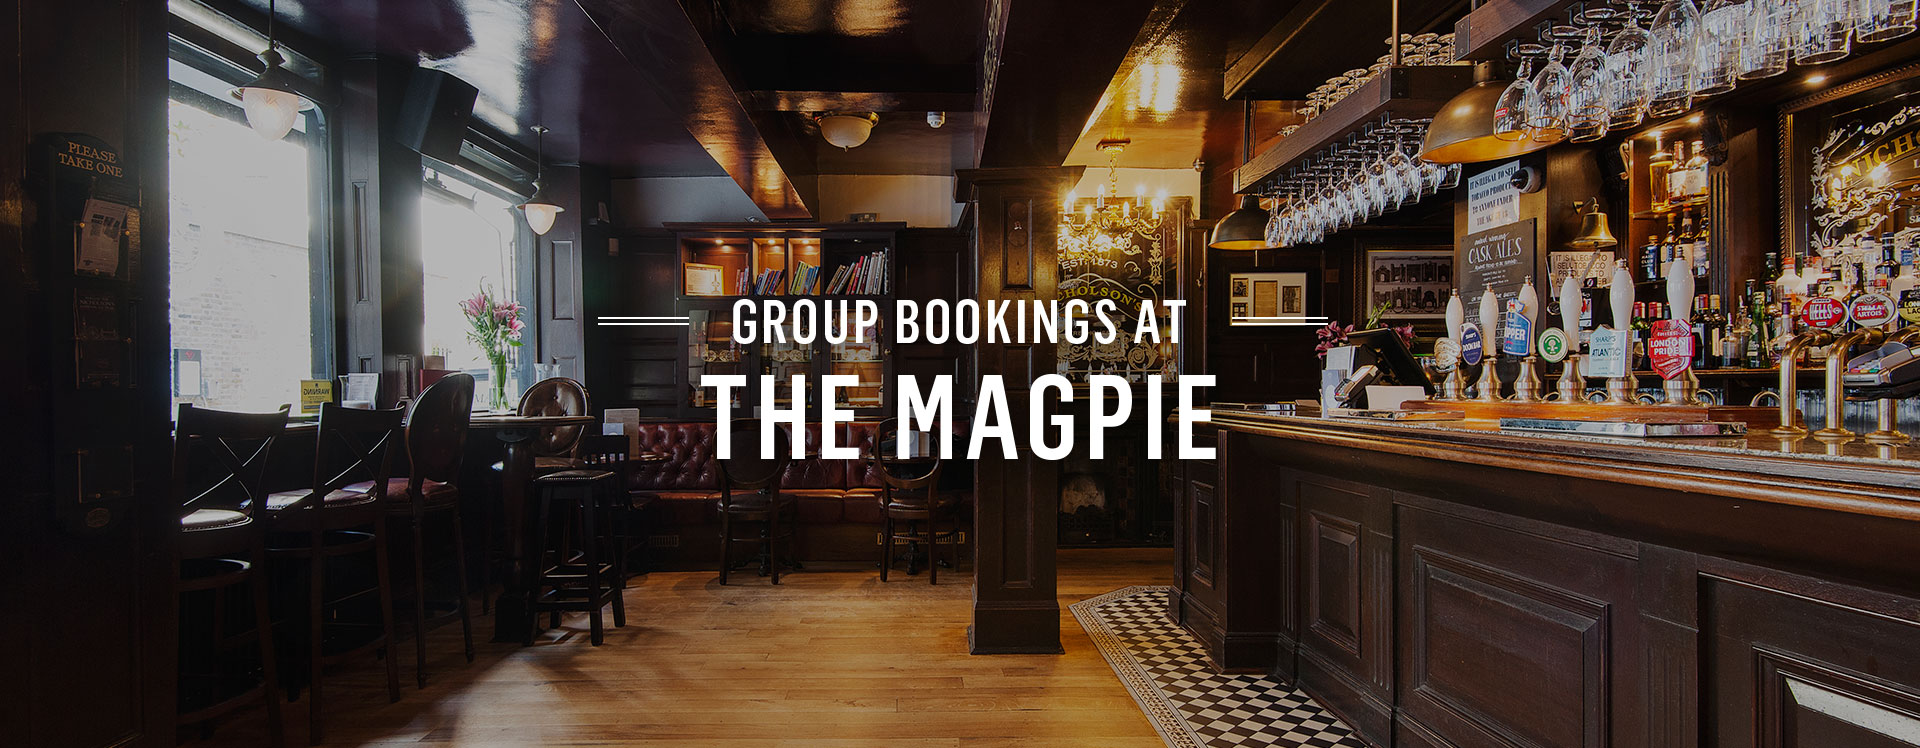 Group Bookings at The Magpie